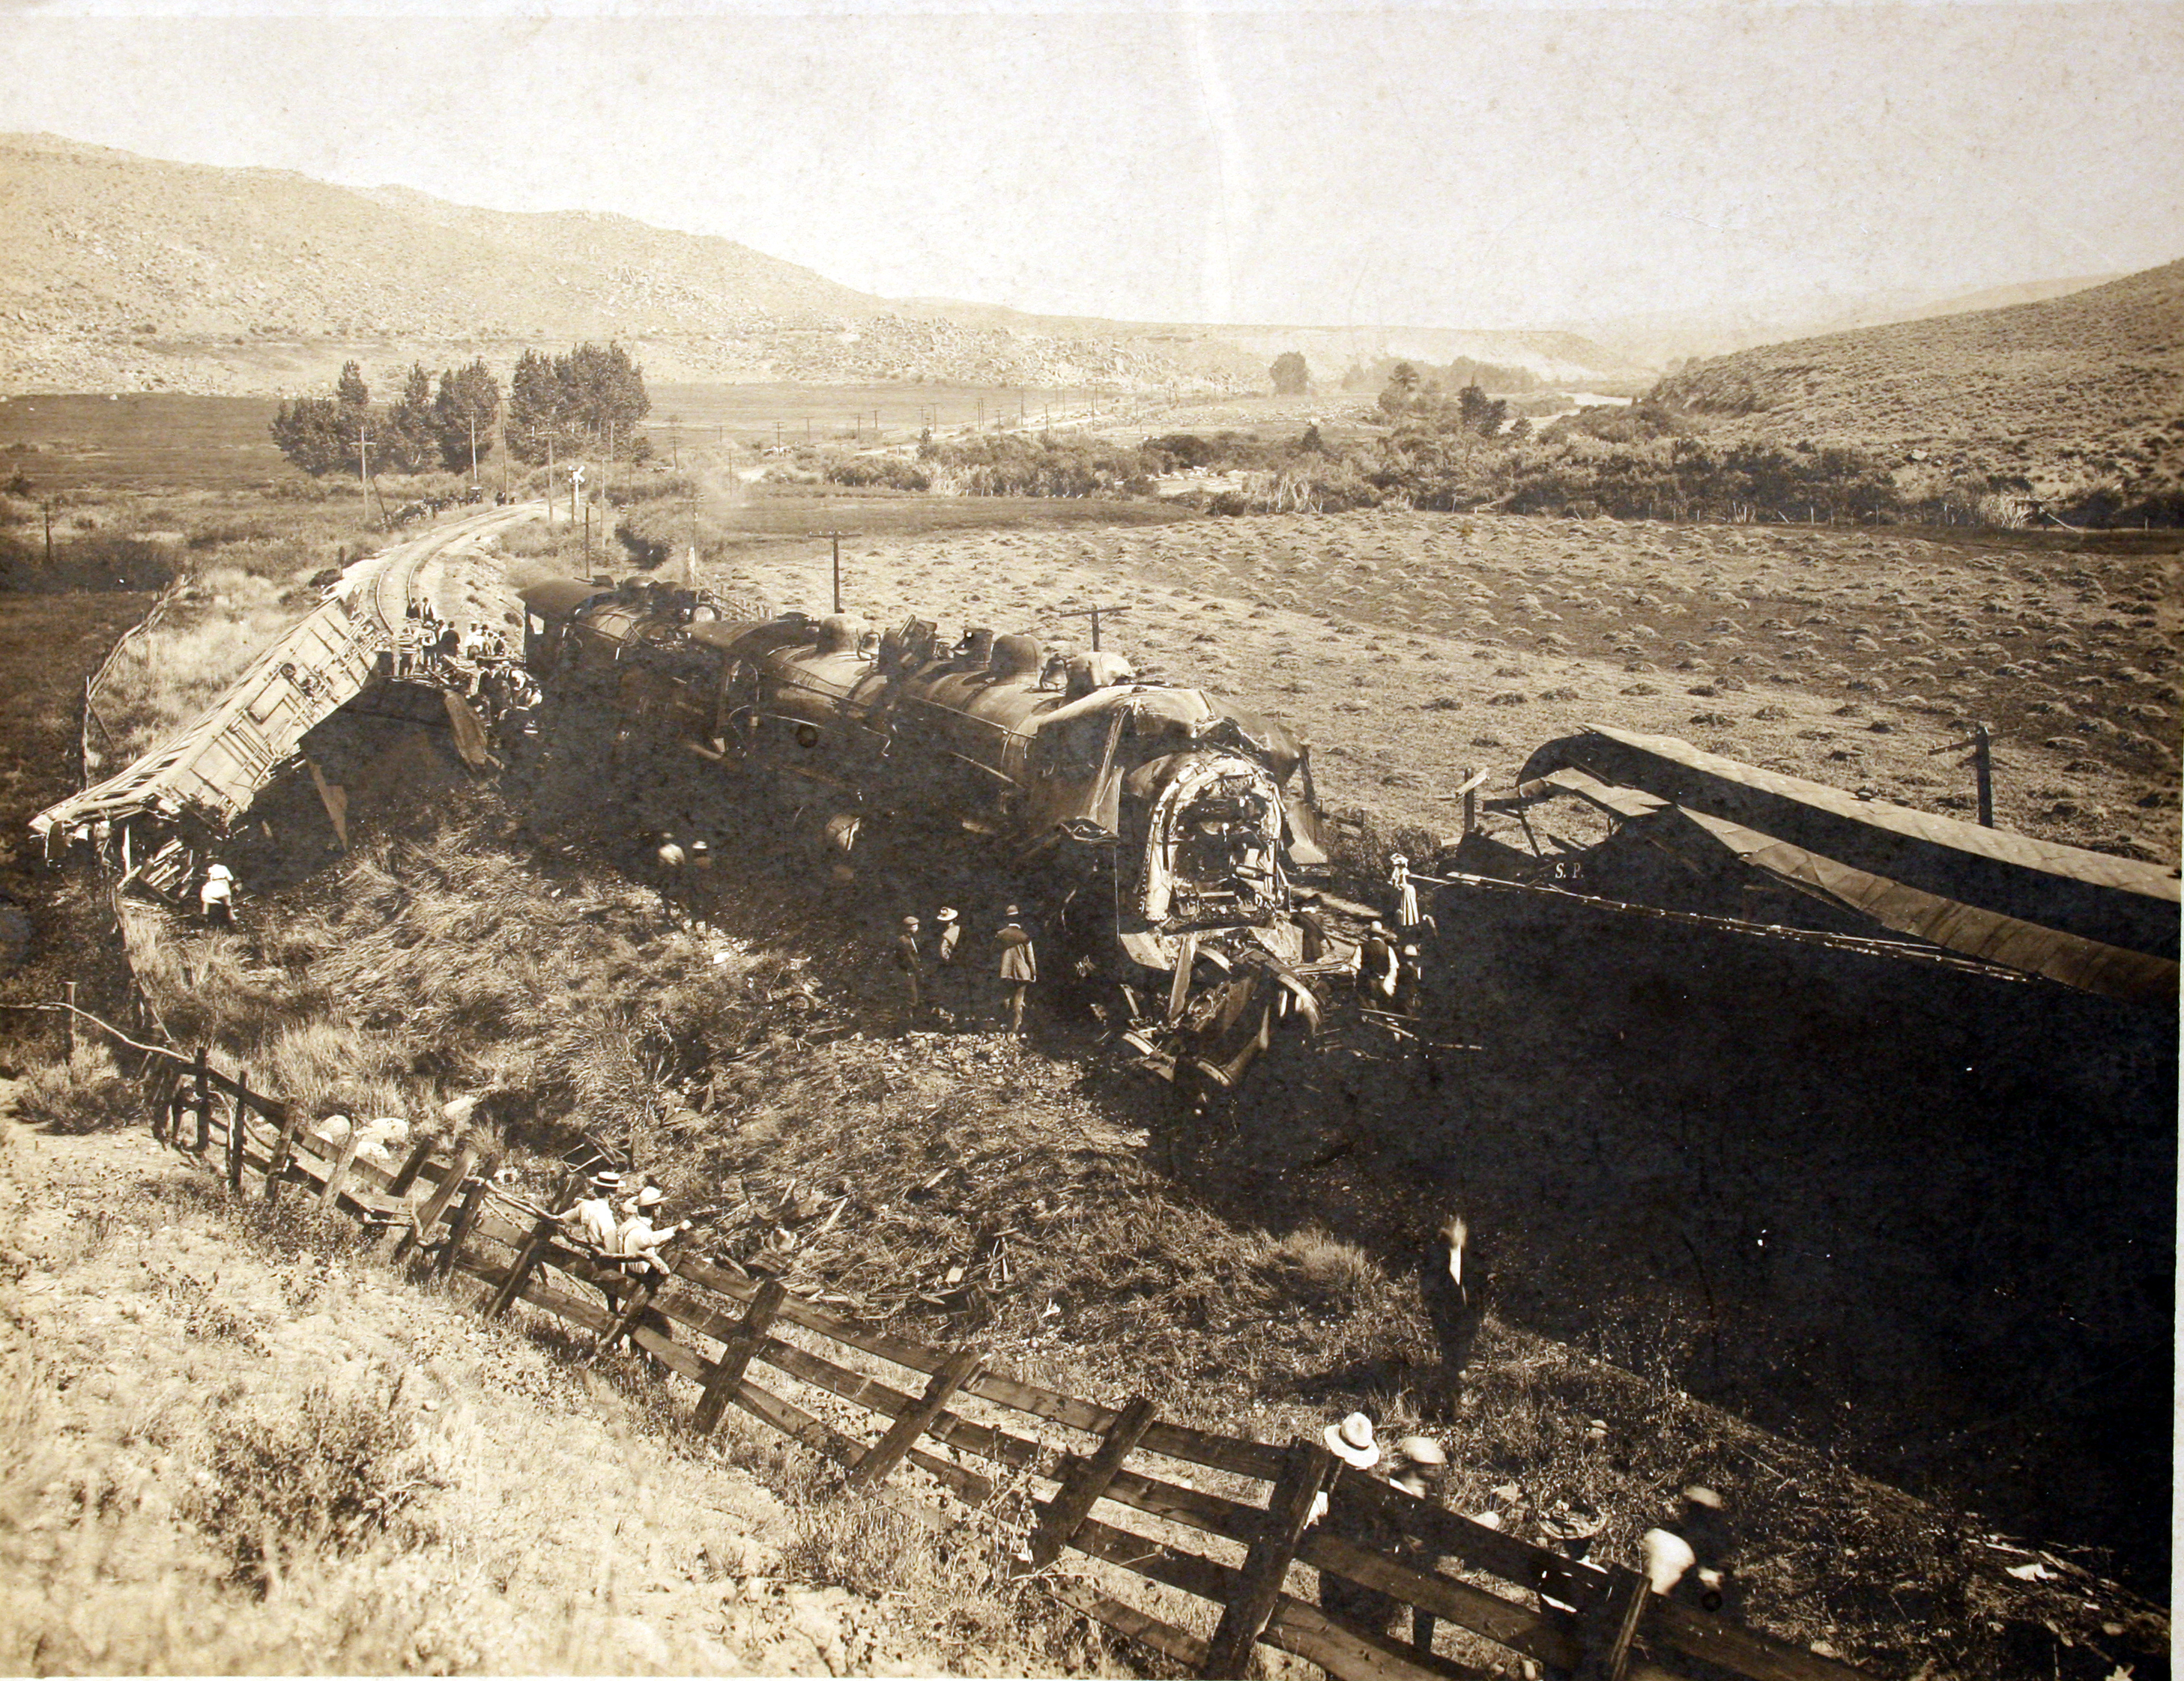 Unknown Old Photo - SP Train Wreck?